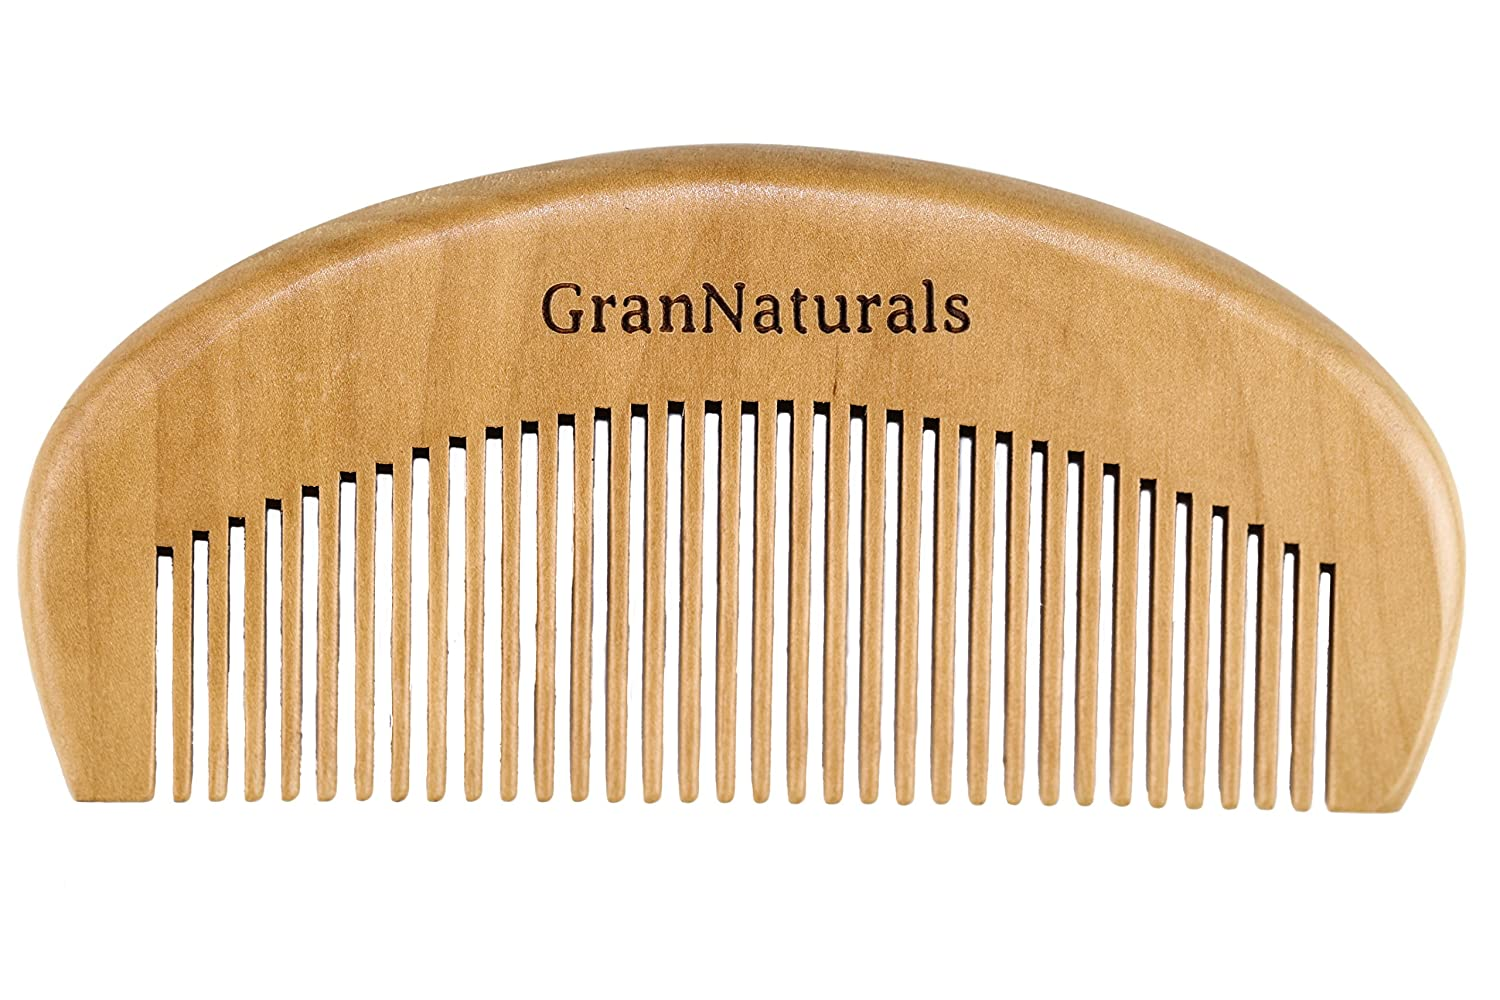 GranNaturals Wooden Comb Hair + Beard Detangler for Women and Men - Natural Anti Static Wood for Detangling and Styling Wet or Dry Curly, Thick, Wavy, or Straight Hair - Small Pocket Sized Gran Goods